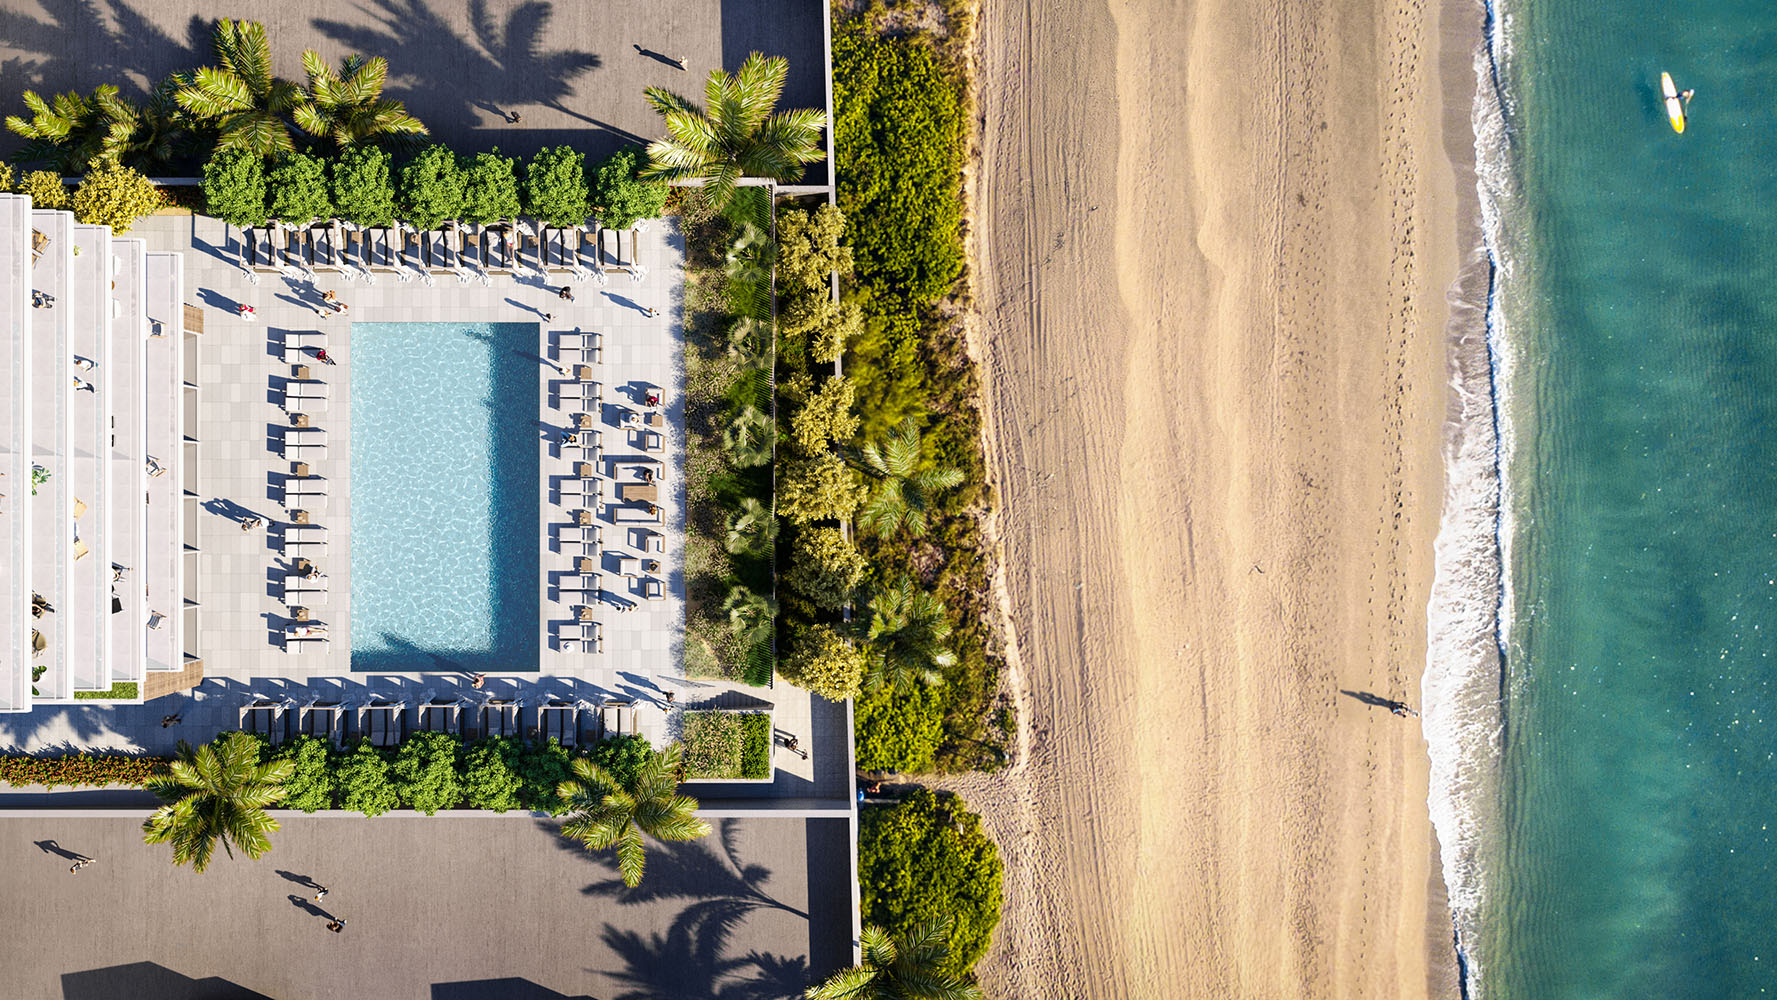 Exterior aerial view of 2000 Ocean condominium with an ocean front pool with palm trees located in Hallandale Beach, Florida.